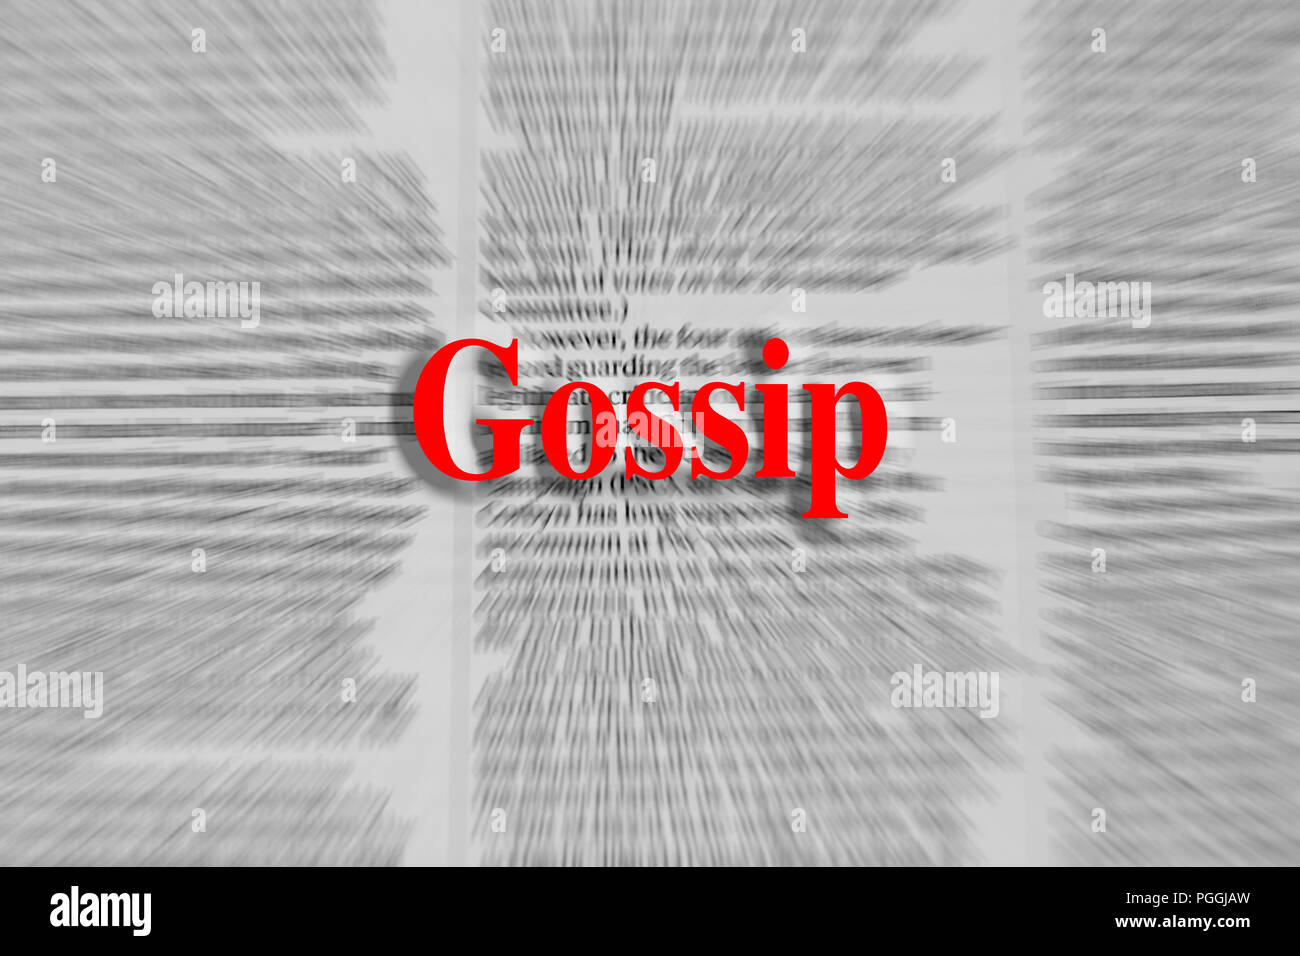 Gossip written in red with a newspaper article blurred in the background Stock Photo